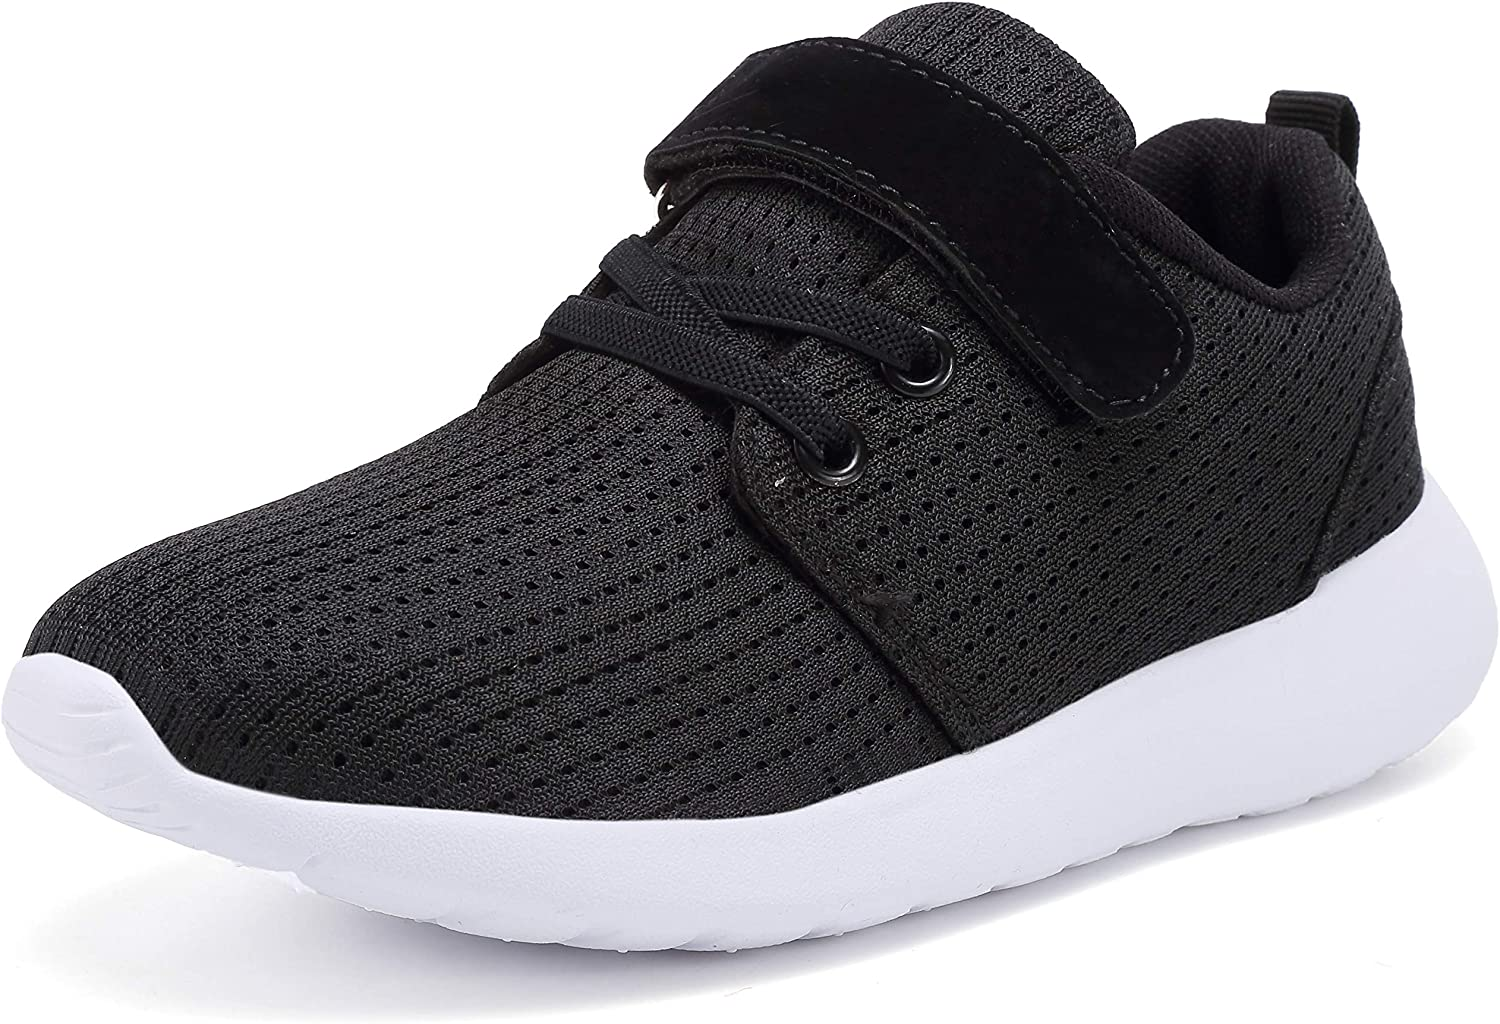 Cdon Boys Girls Lightweight Breathable Sneakers Strap Athletic Running Shoes